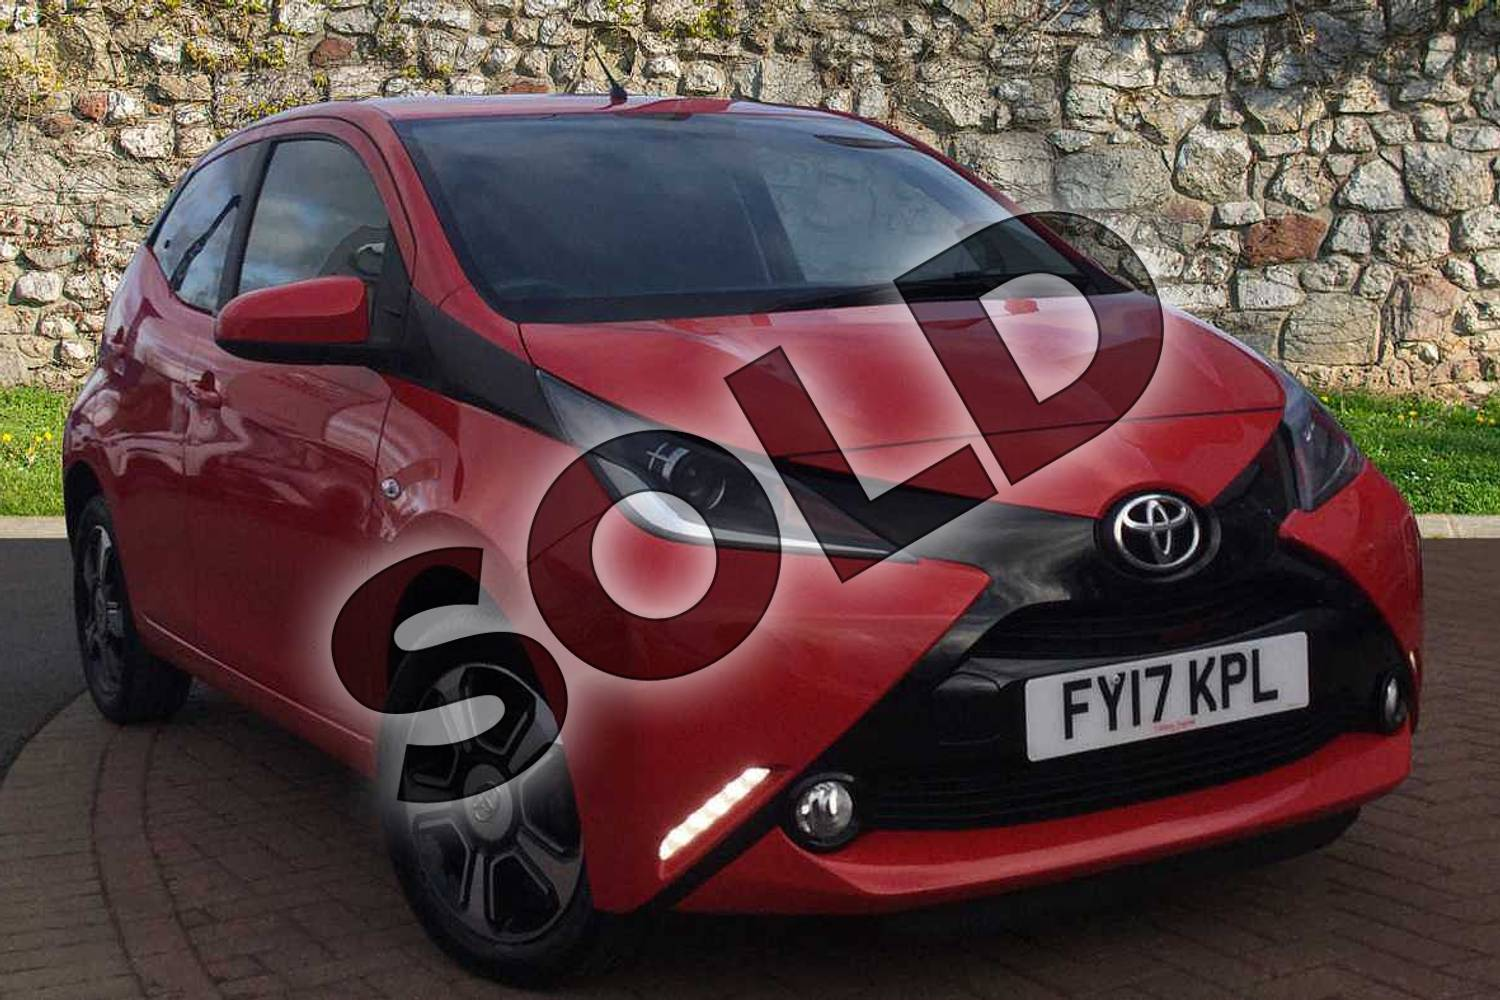 2017 Toyota AYGO Hatchback Special Editions 1.0 VVT-i X-Clusiv 3 5dr in Red Pop at Listers Toyota Grantham